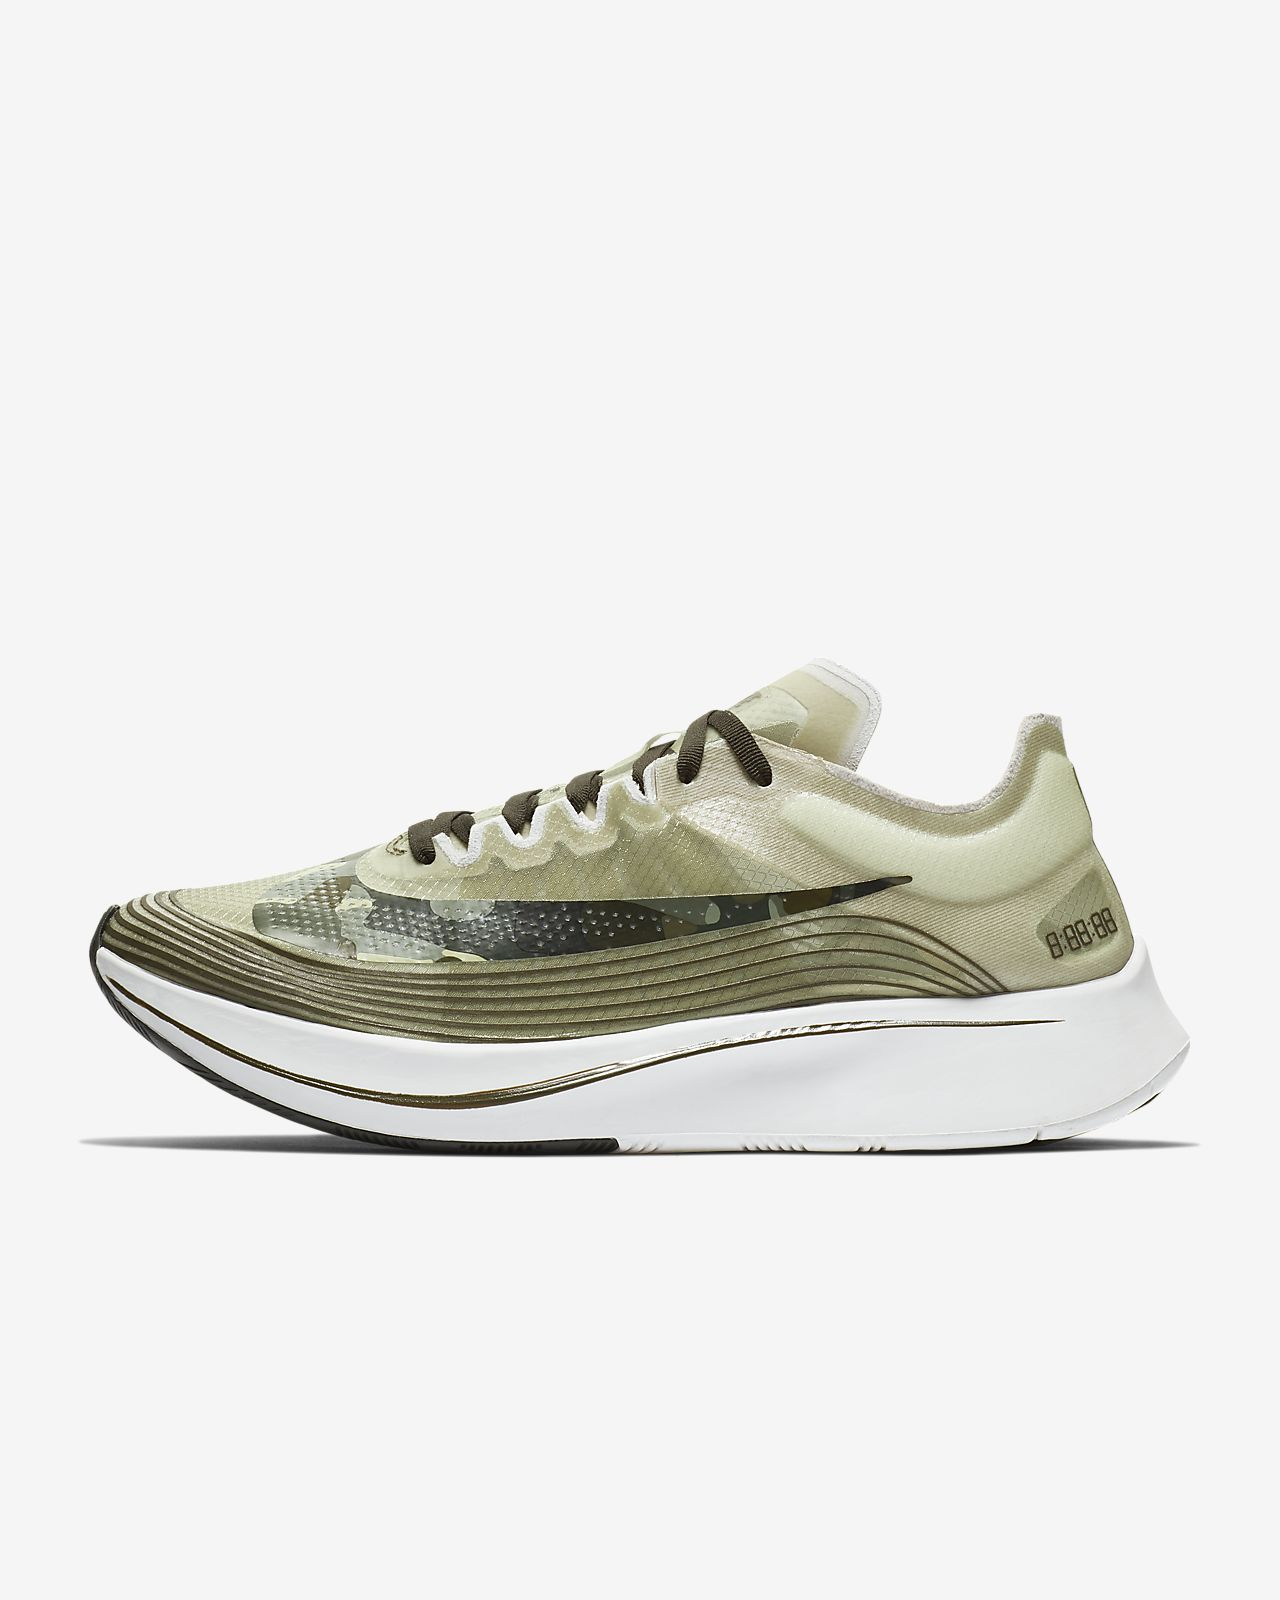 0660af94ed87f Nike Zoom Fly SP Men s Running Shoe. Nike.com